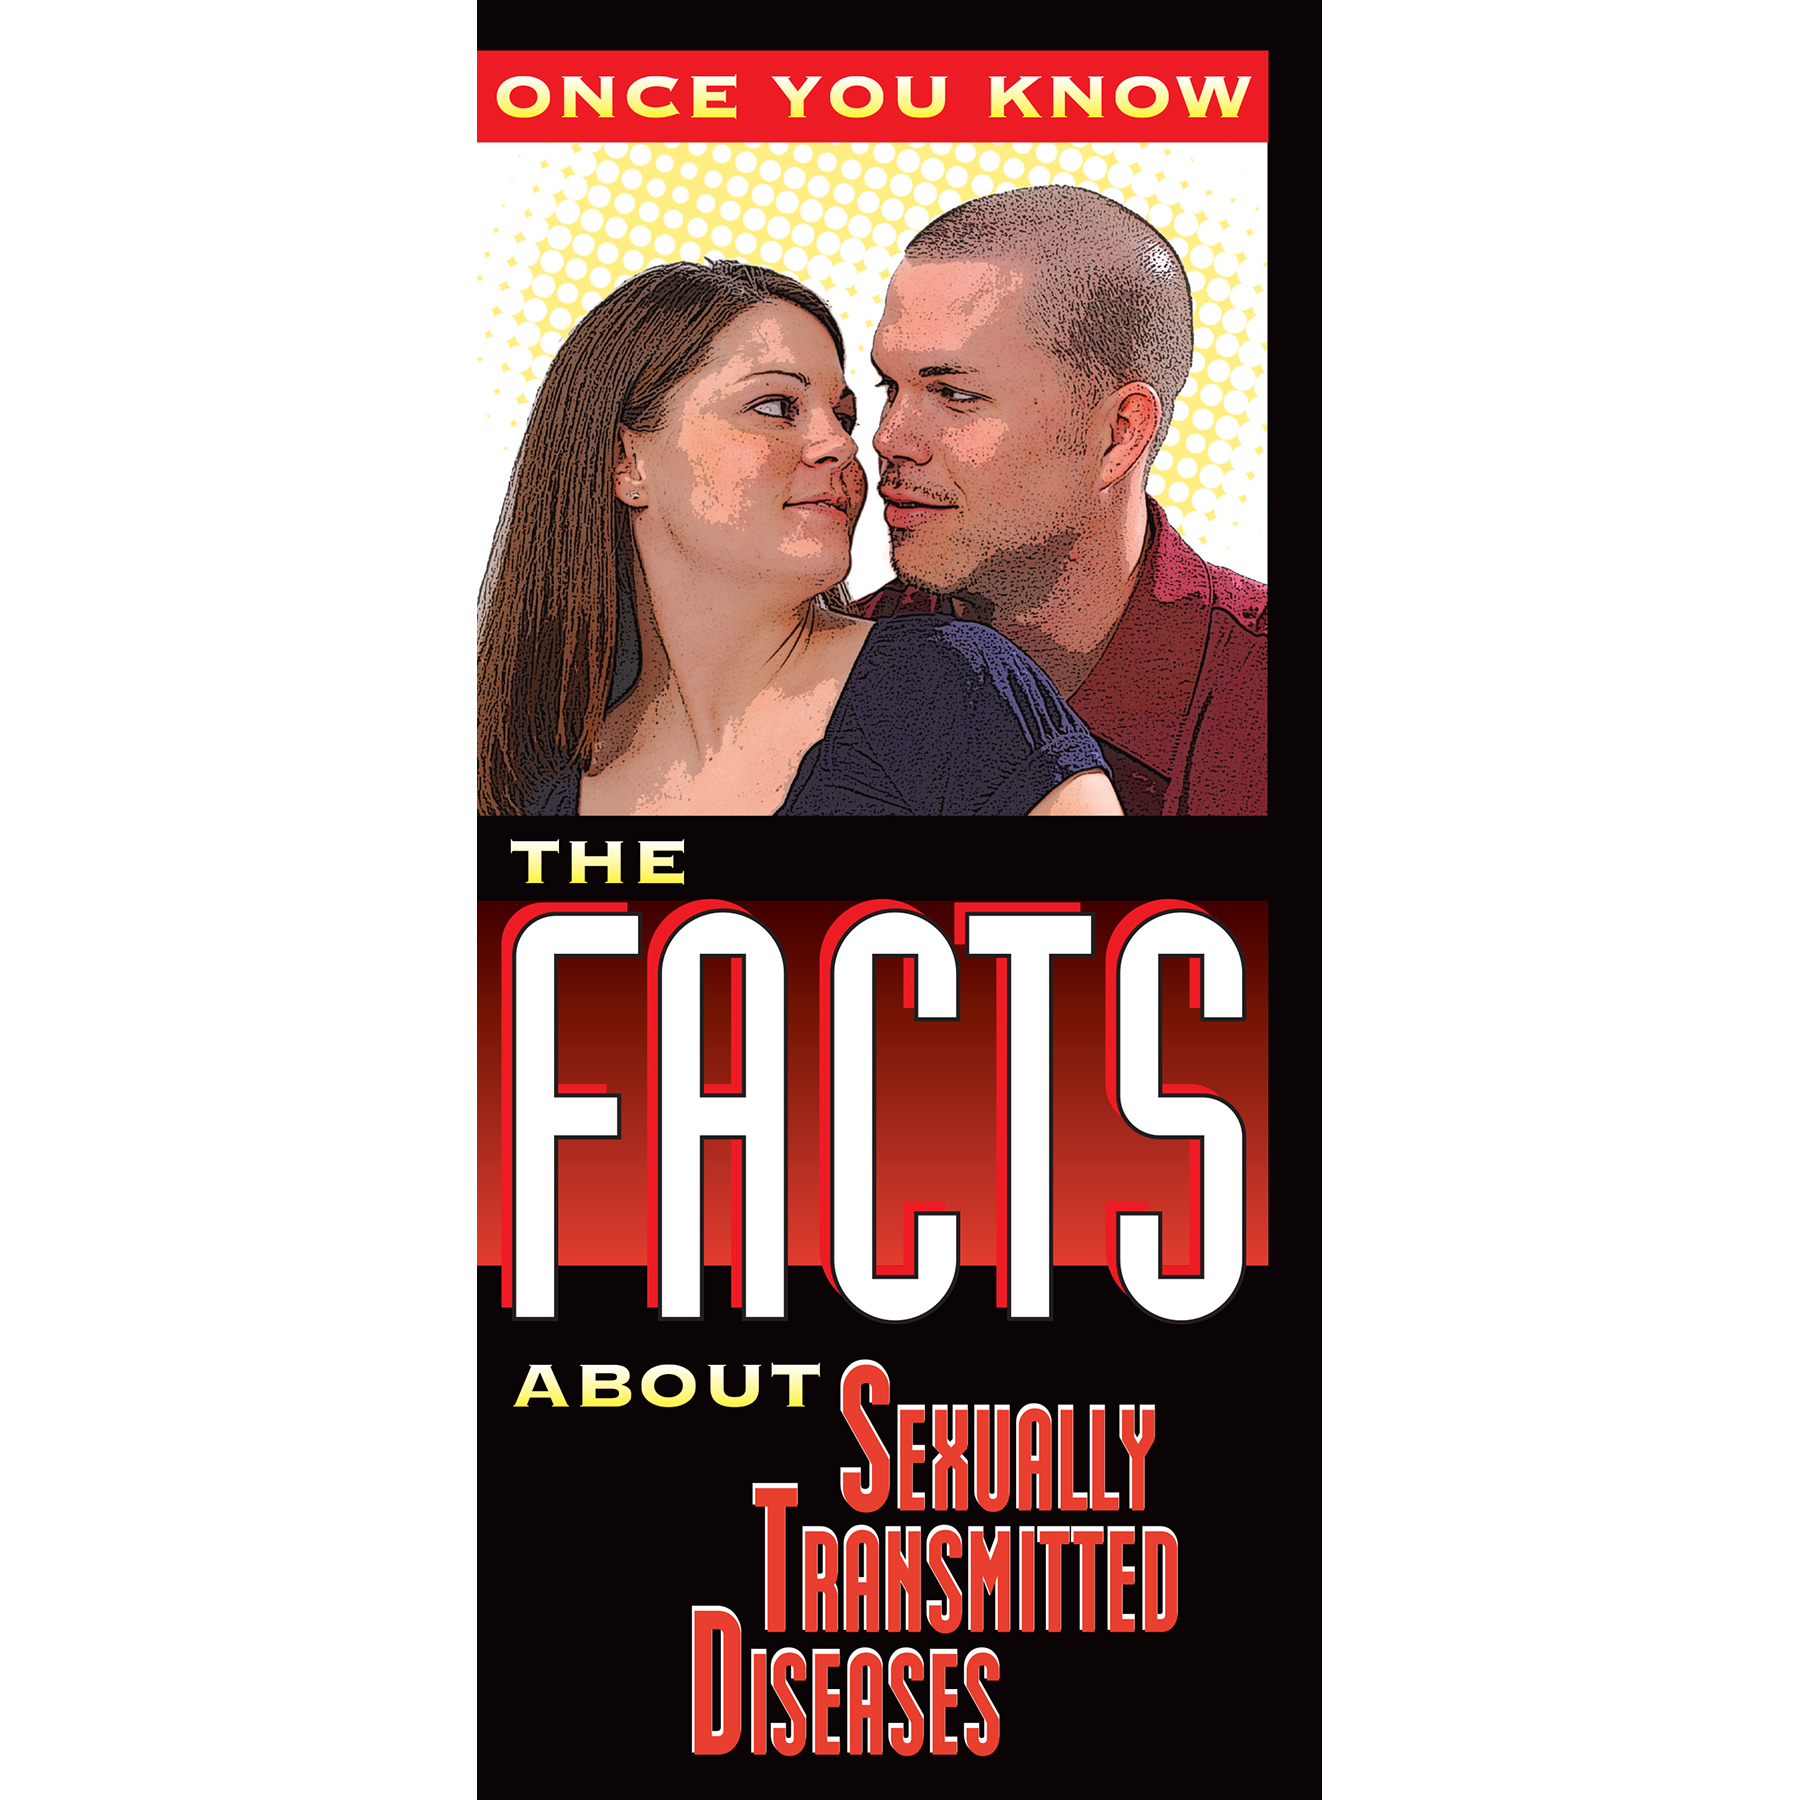 Sti sexually transmitted infections pamphlet